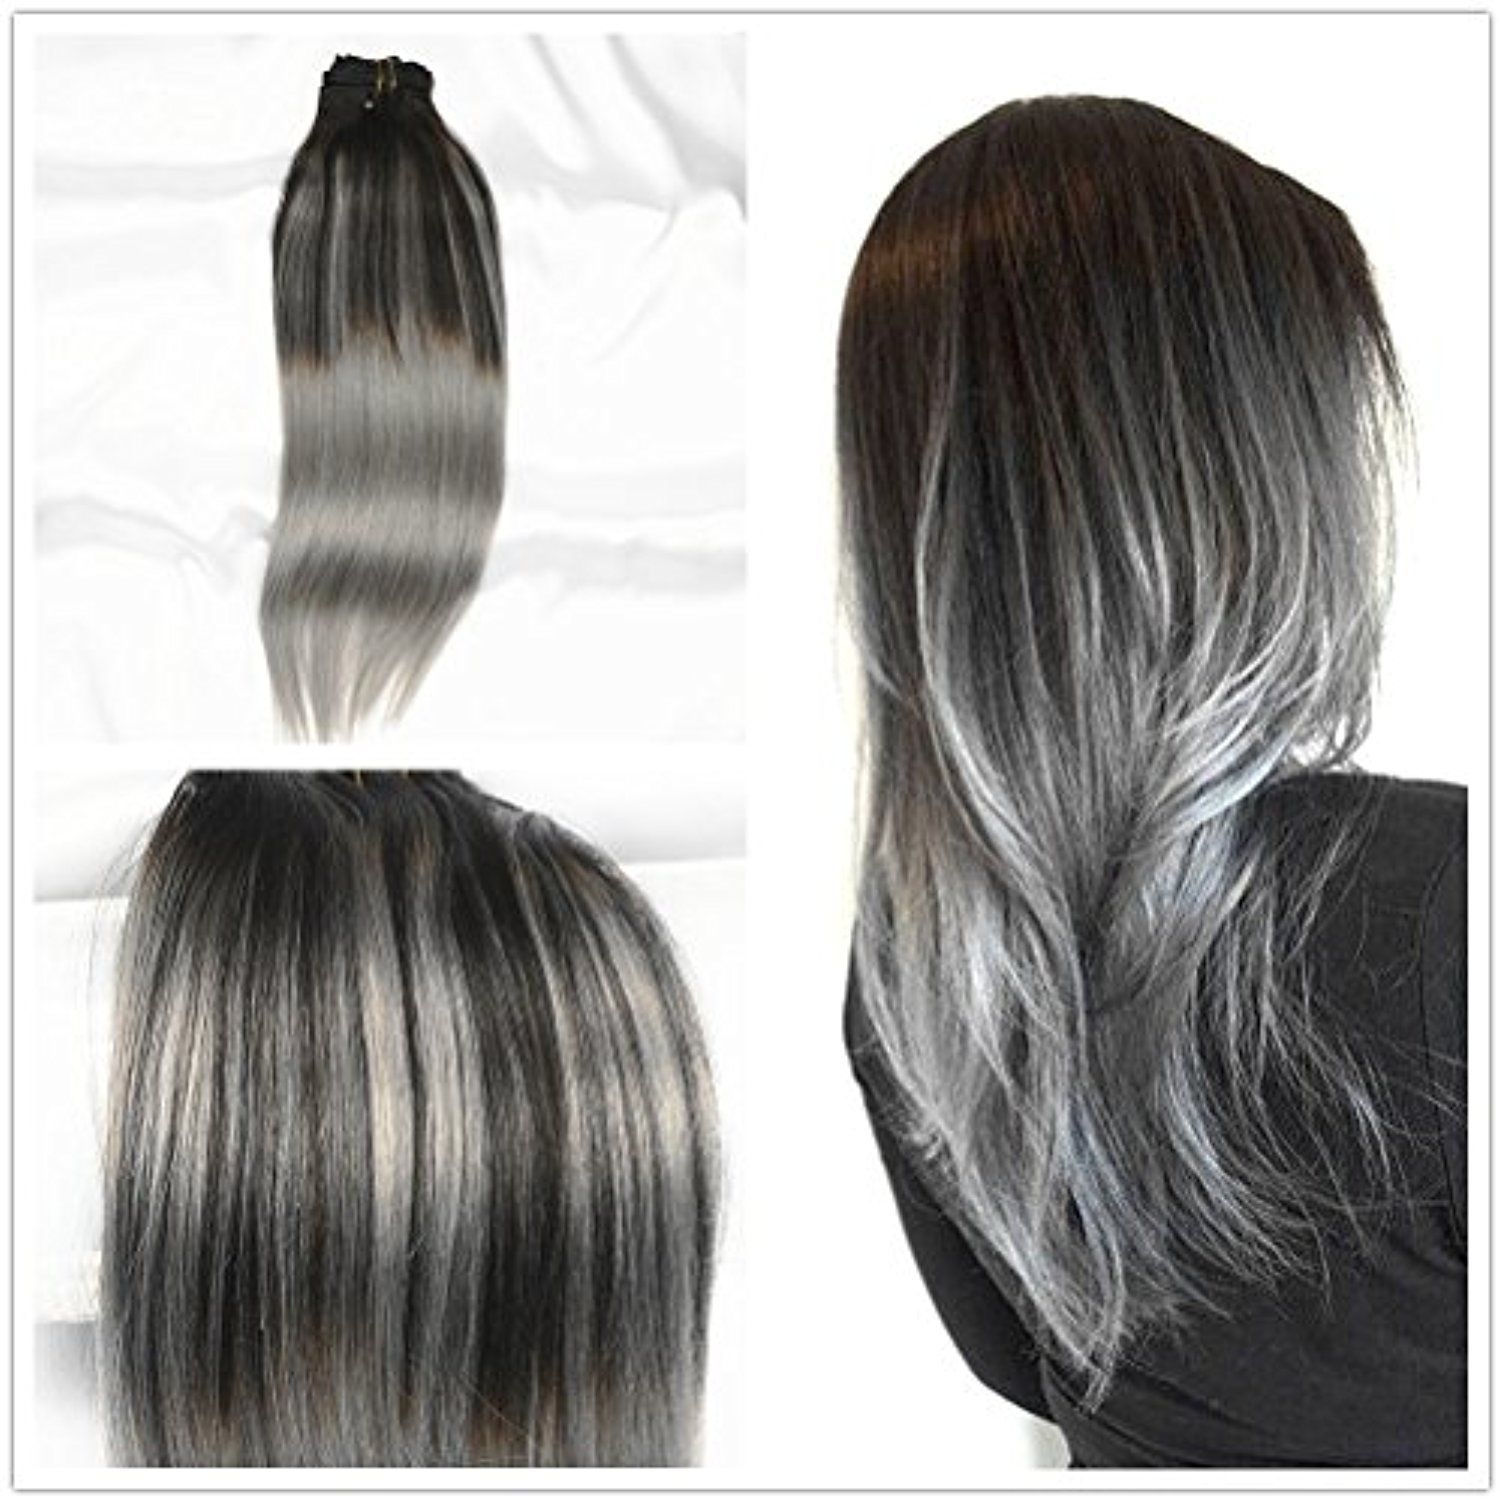 Stella Reina Sombre Silver Balayage Clips In Hair Extensions 7pcs 120g Dip Dye Color Ombr Clip In Hair Extensions Short Hair Balayage Balayage Hair Blonde Long